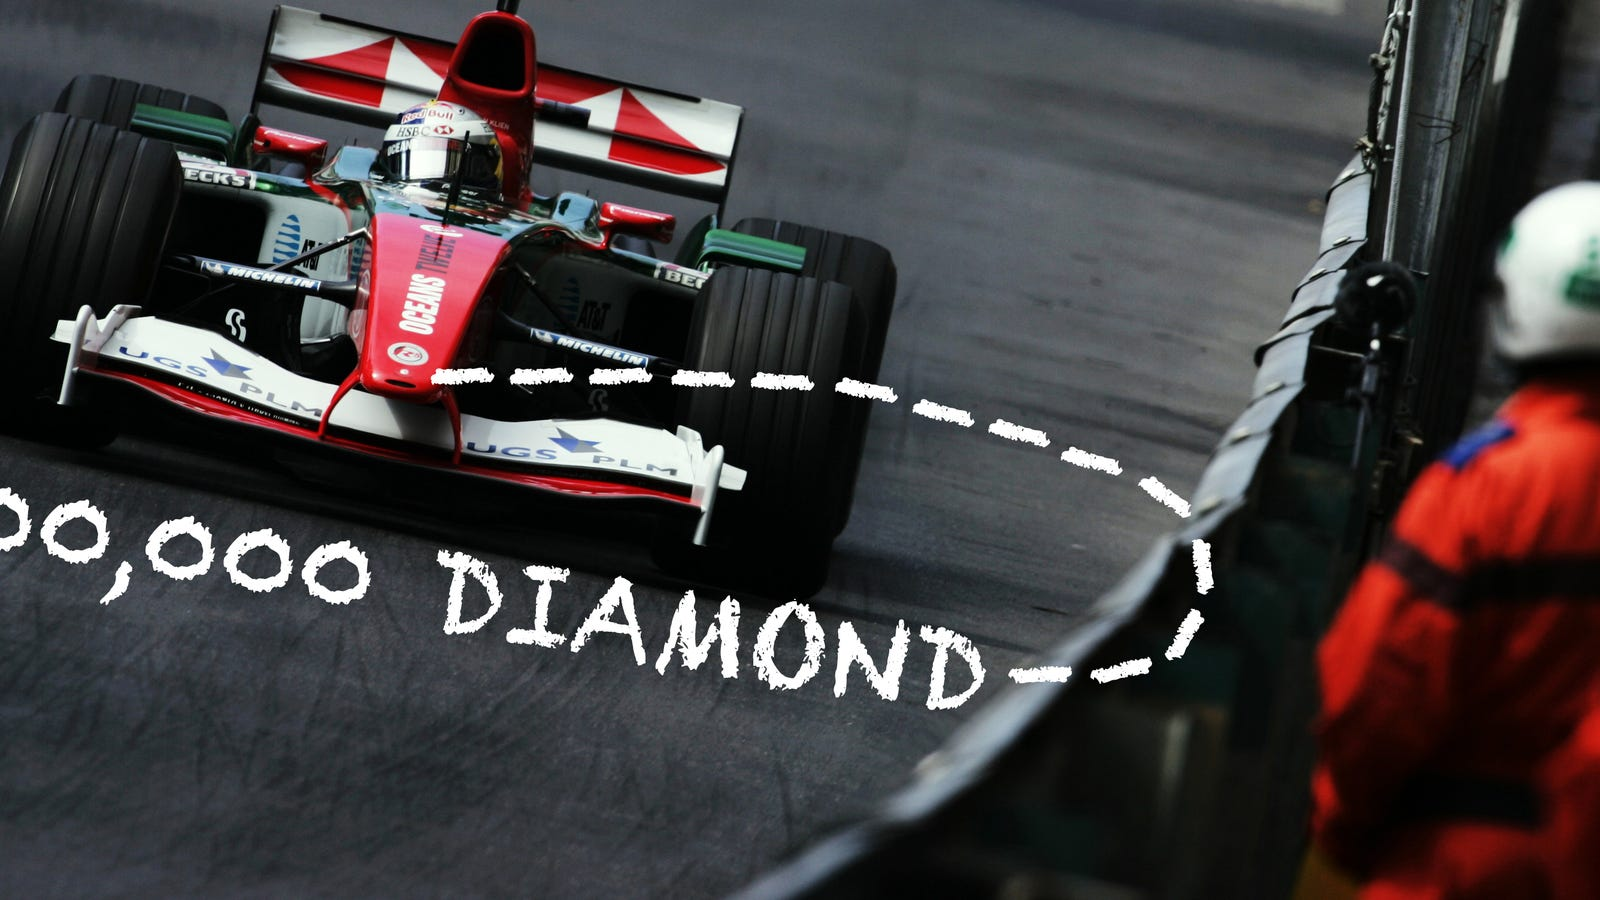 Here S How A Flawless 300 000 Diamond Was Lost In An F1 Car Crash